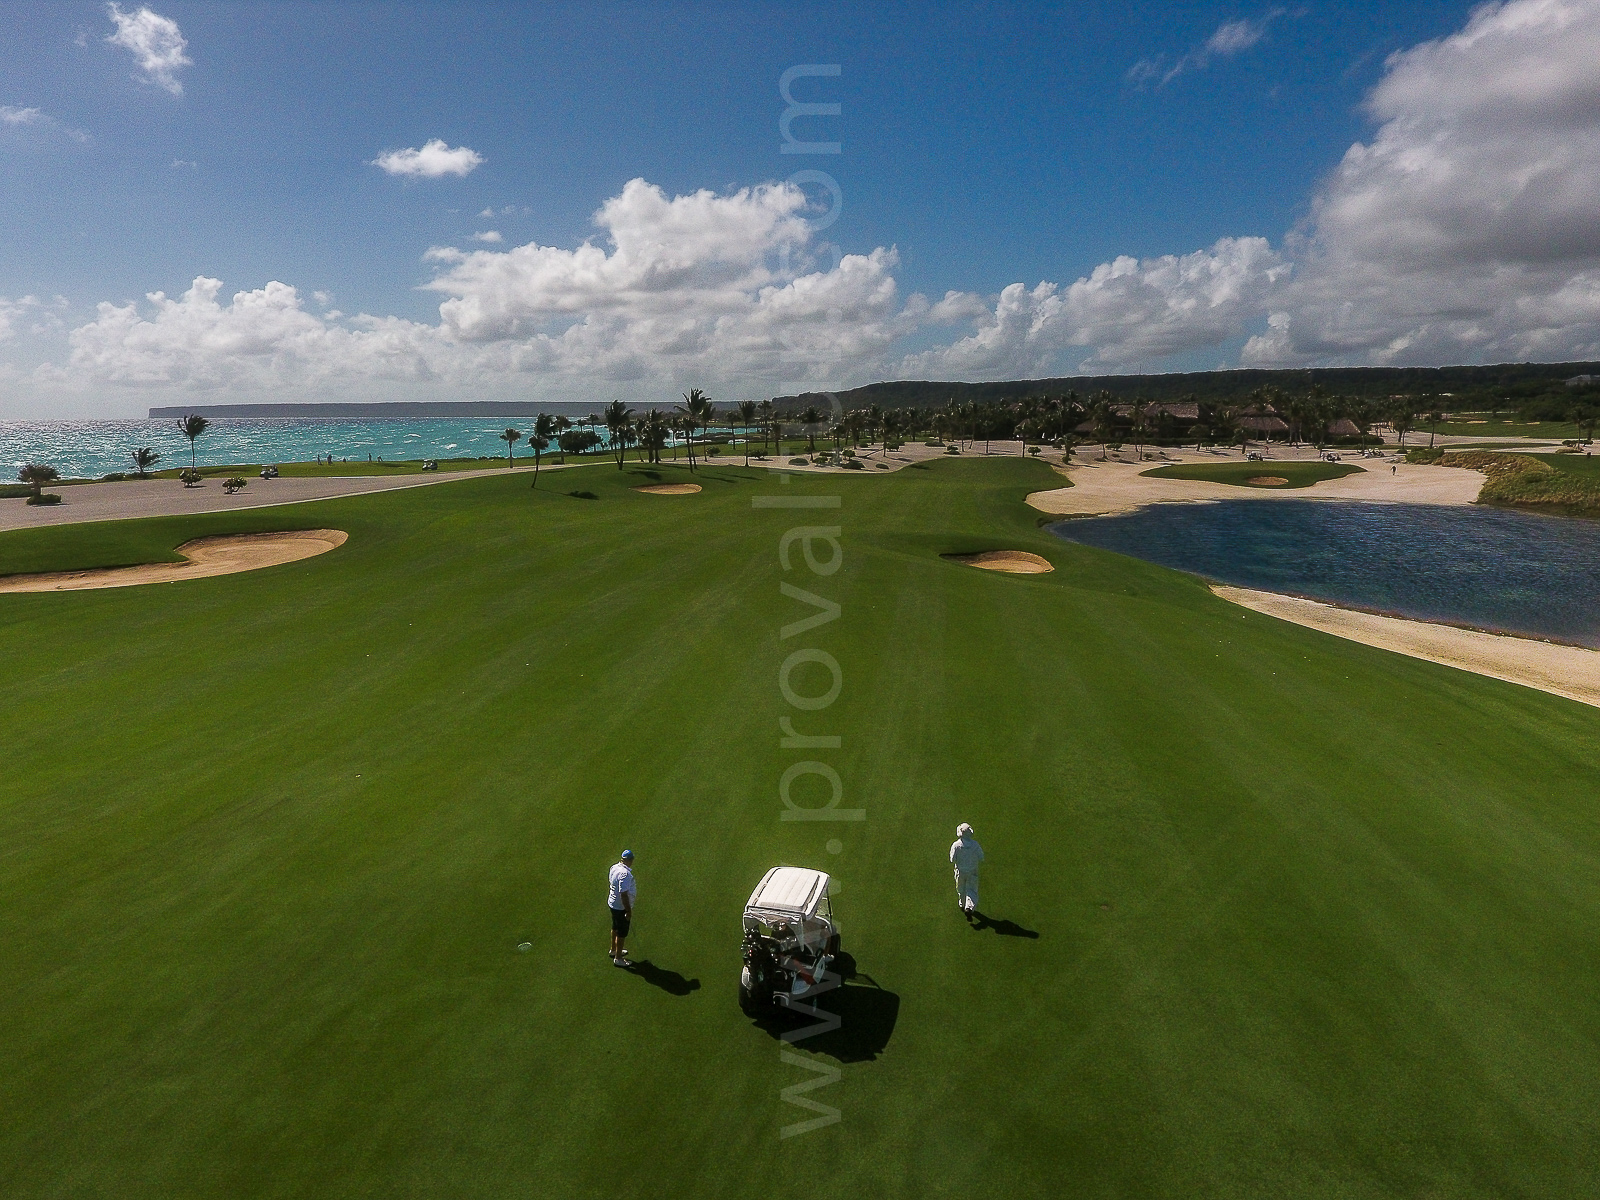 Additional photo for property listing at Cap Cana, Punta Cana 23000, Dominican Republic Cap Cana, ドミニカ共和国